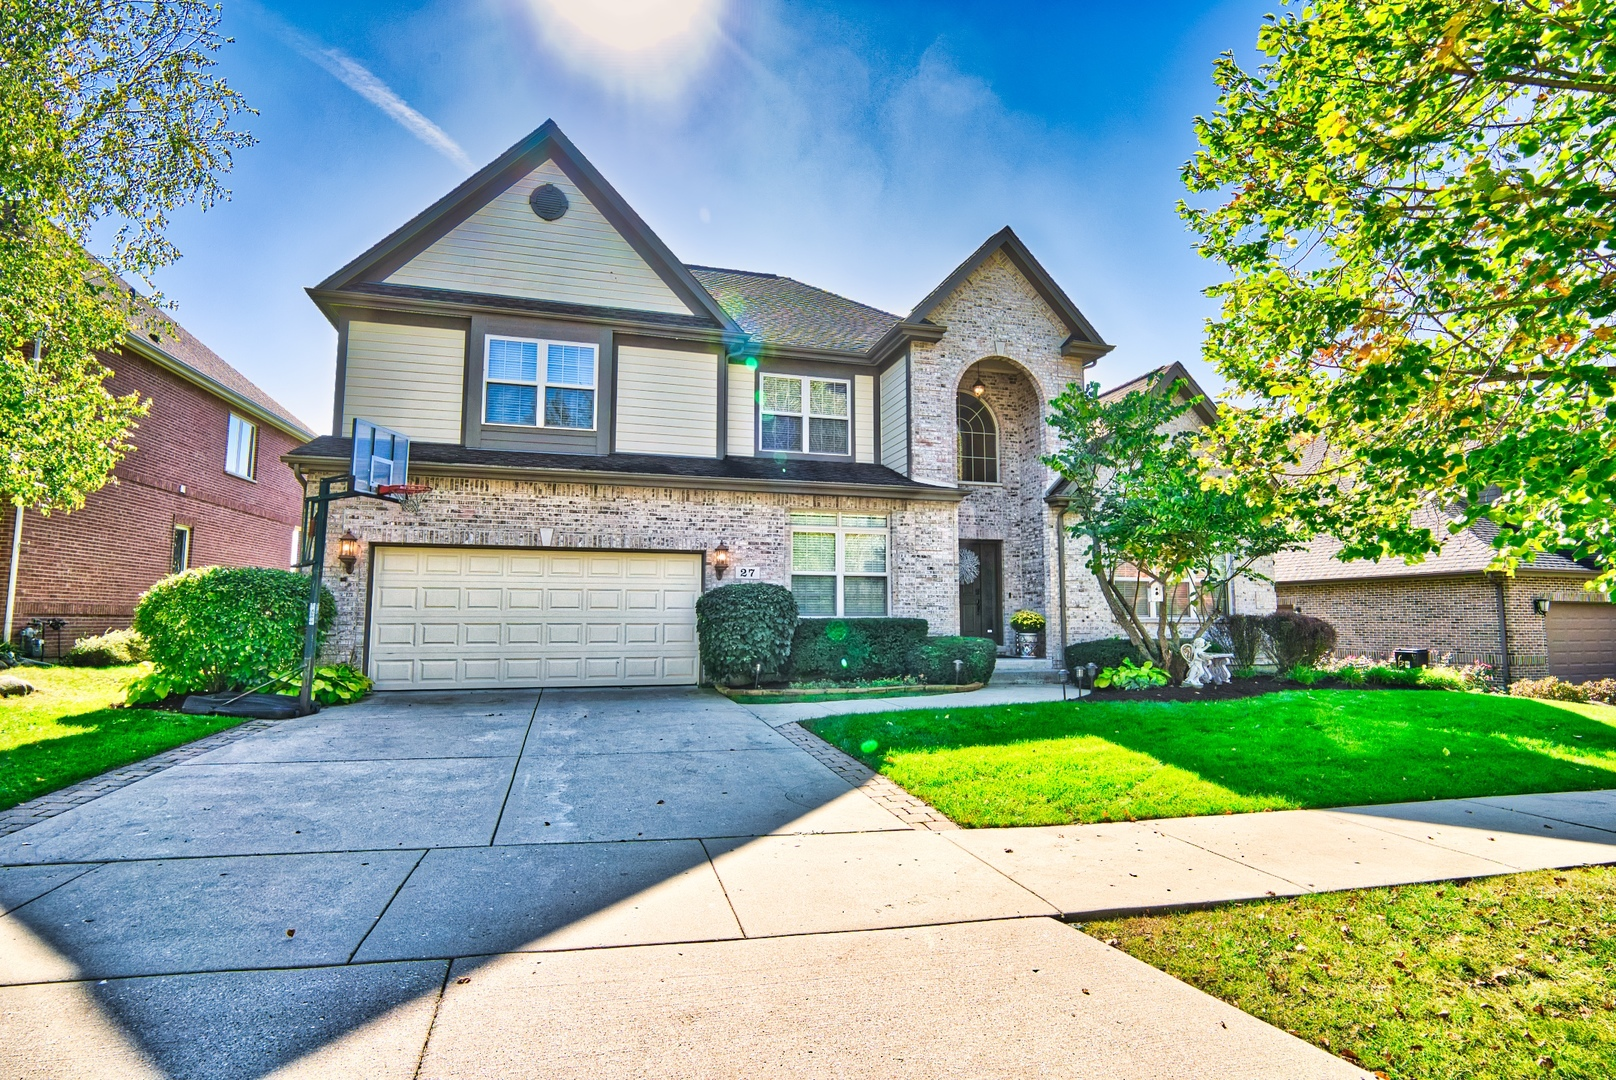 27 East Warson Court, one of homes for sale in Vernon Hills